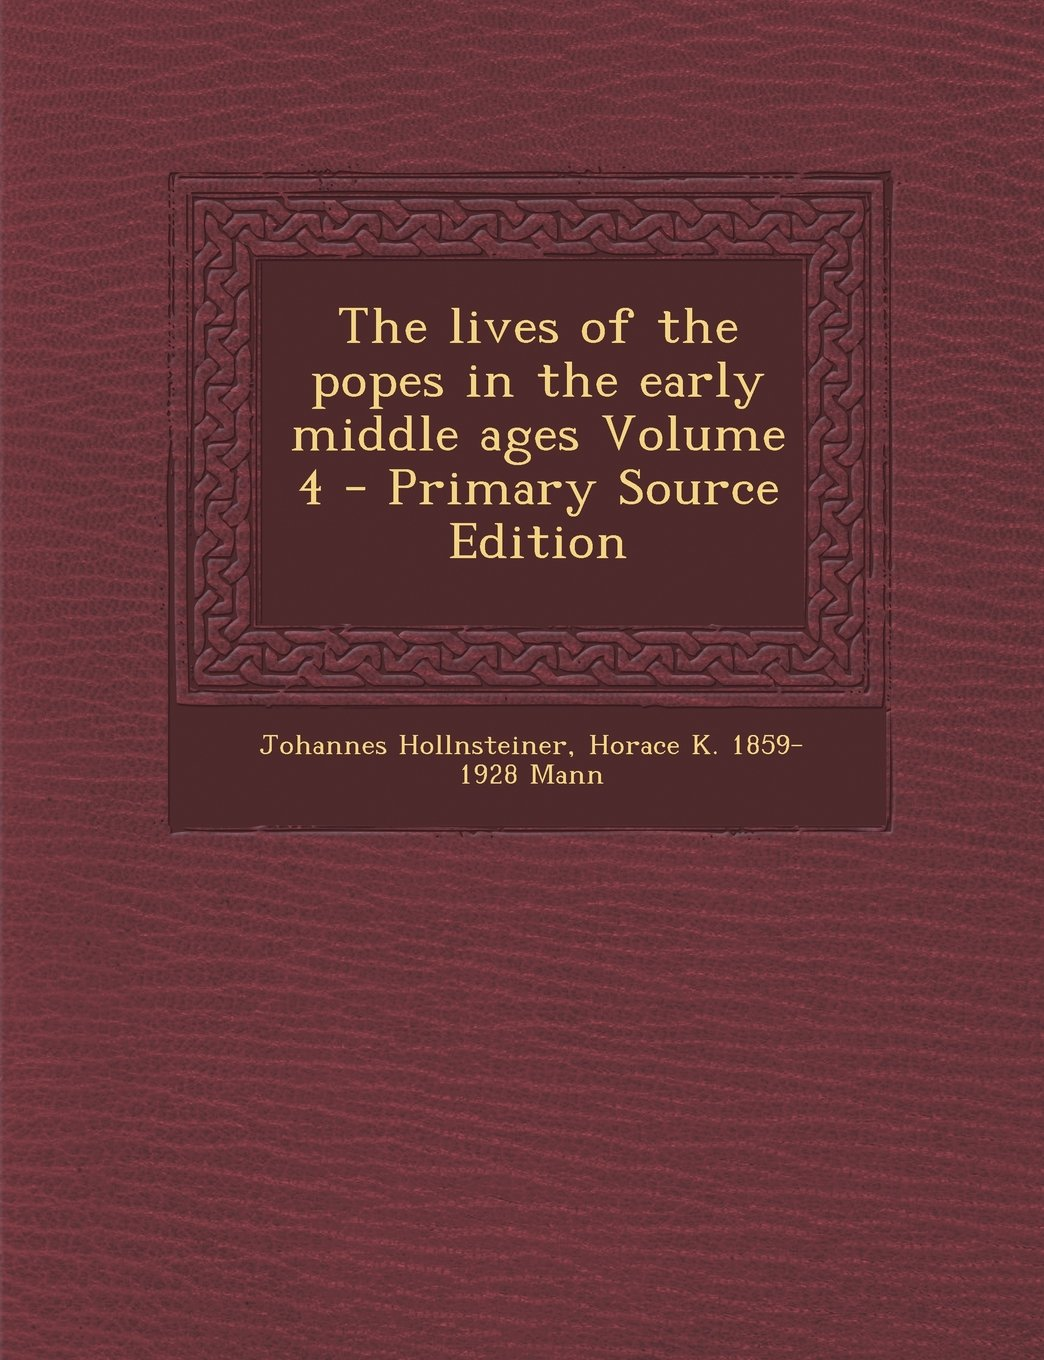 Lives of the Popes in the Early Middle Ages Volume 4 pdf